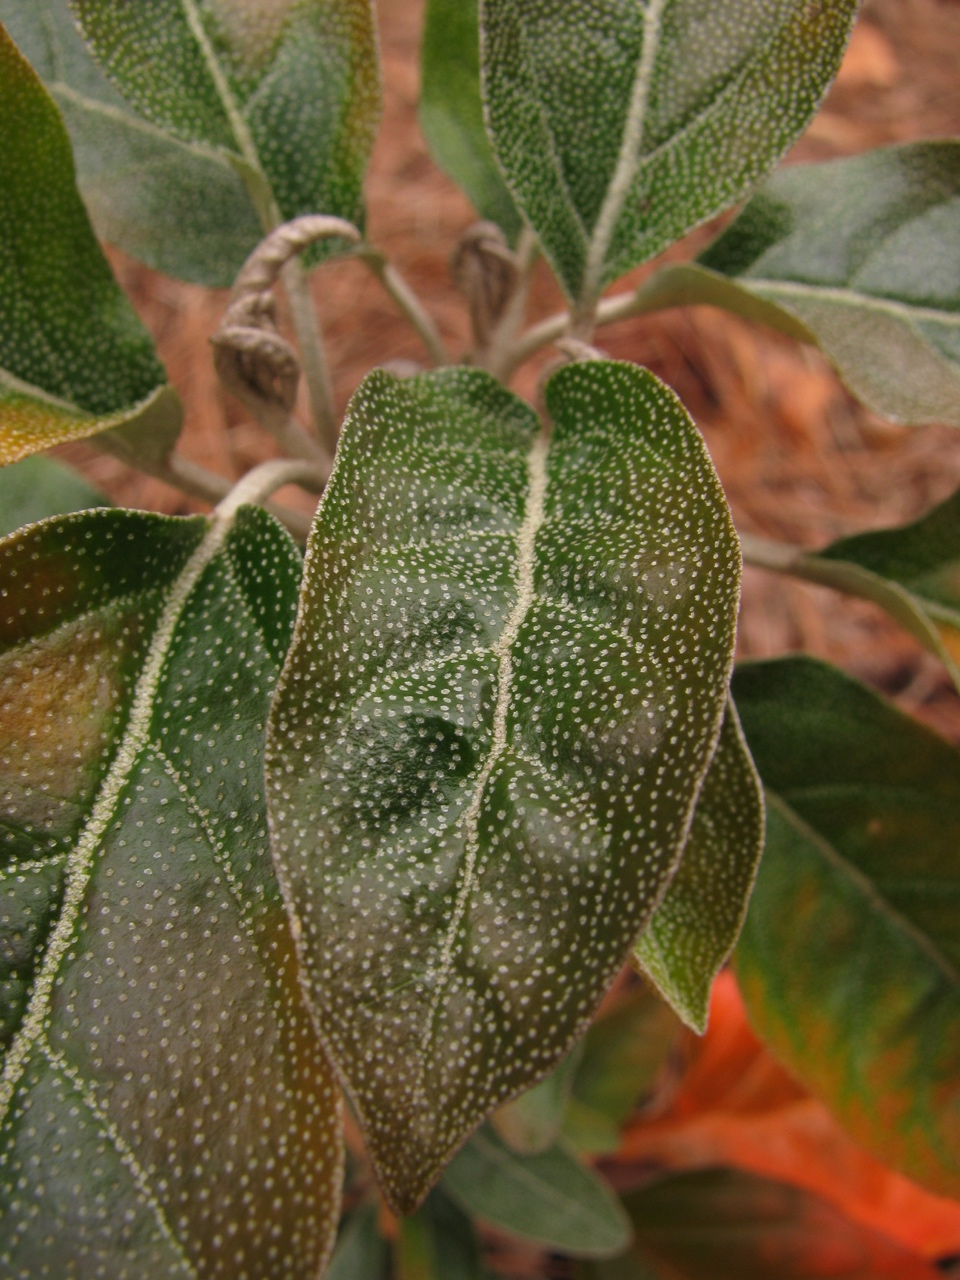 The Scientific Name is Croton alabamensis var. alabamensis. You will likely hear them called Alabama Croton. This picture shows the Close-up of leaves showing silvery scales. More numerous scales are on the underside of the leaves creating a silvery sheen of Croton alabamensis var. alabamensis